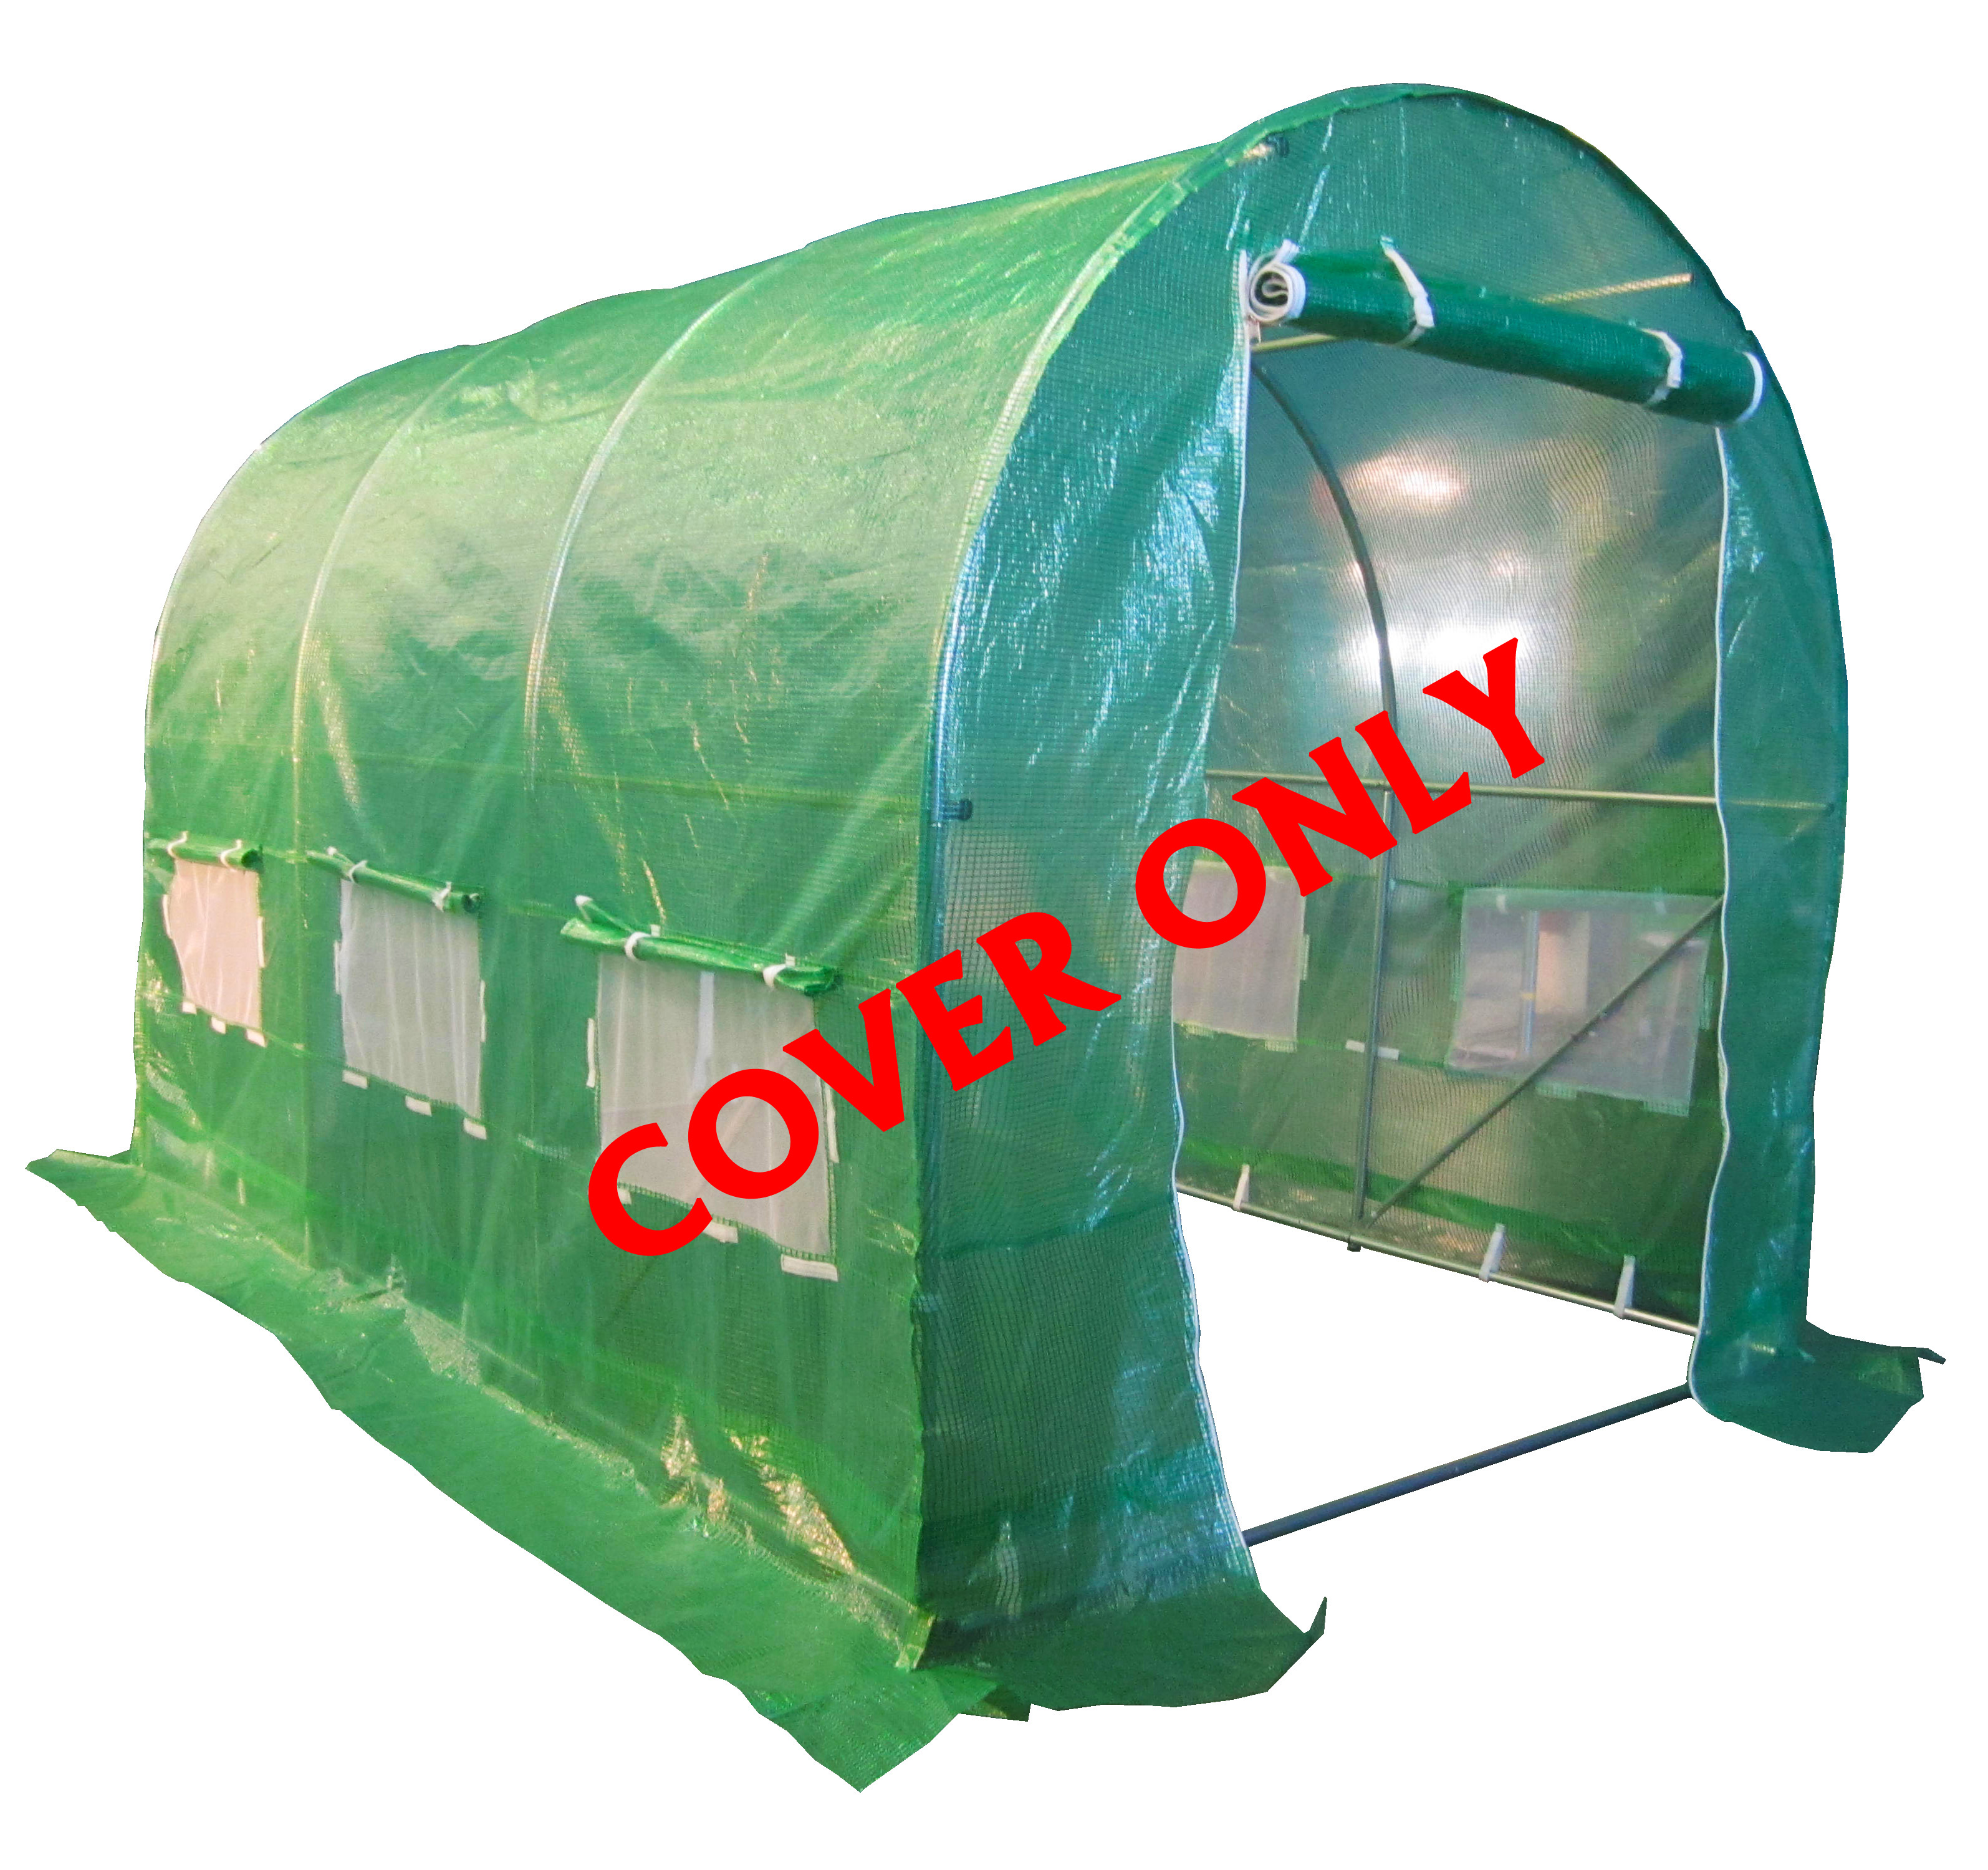 new polytunnel greenhouse pollytunnel poly tunnel cover only 3m x 2m 3 section ebay. Black Bedroom Furniture Sets. Home Design Ideas